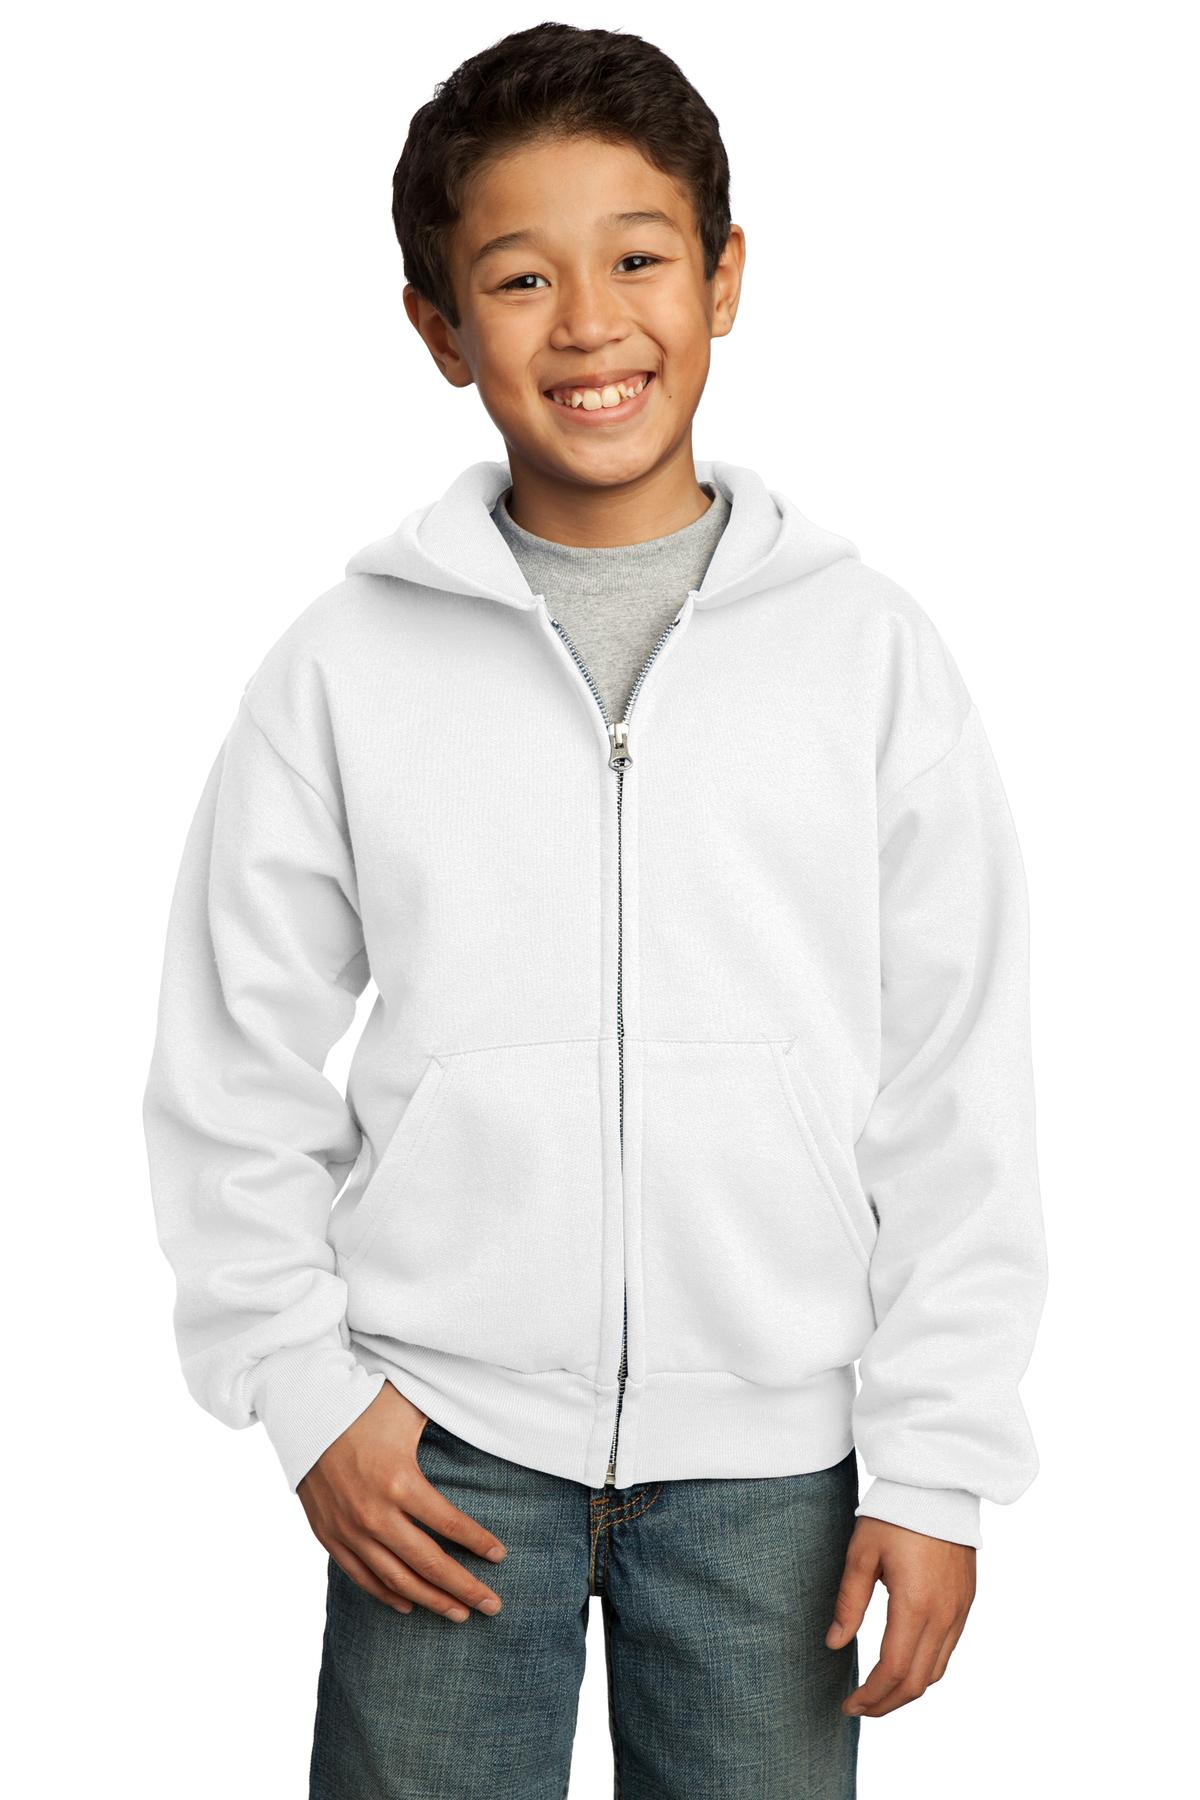 Port & Company ®  - Youth Core Fleece Full-Zip Hooded Sweatshirt.  PC90YZH - White